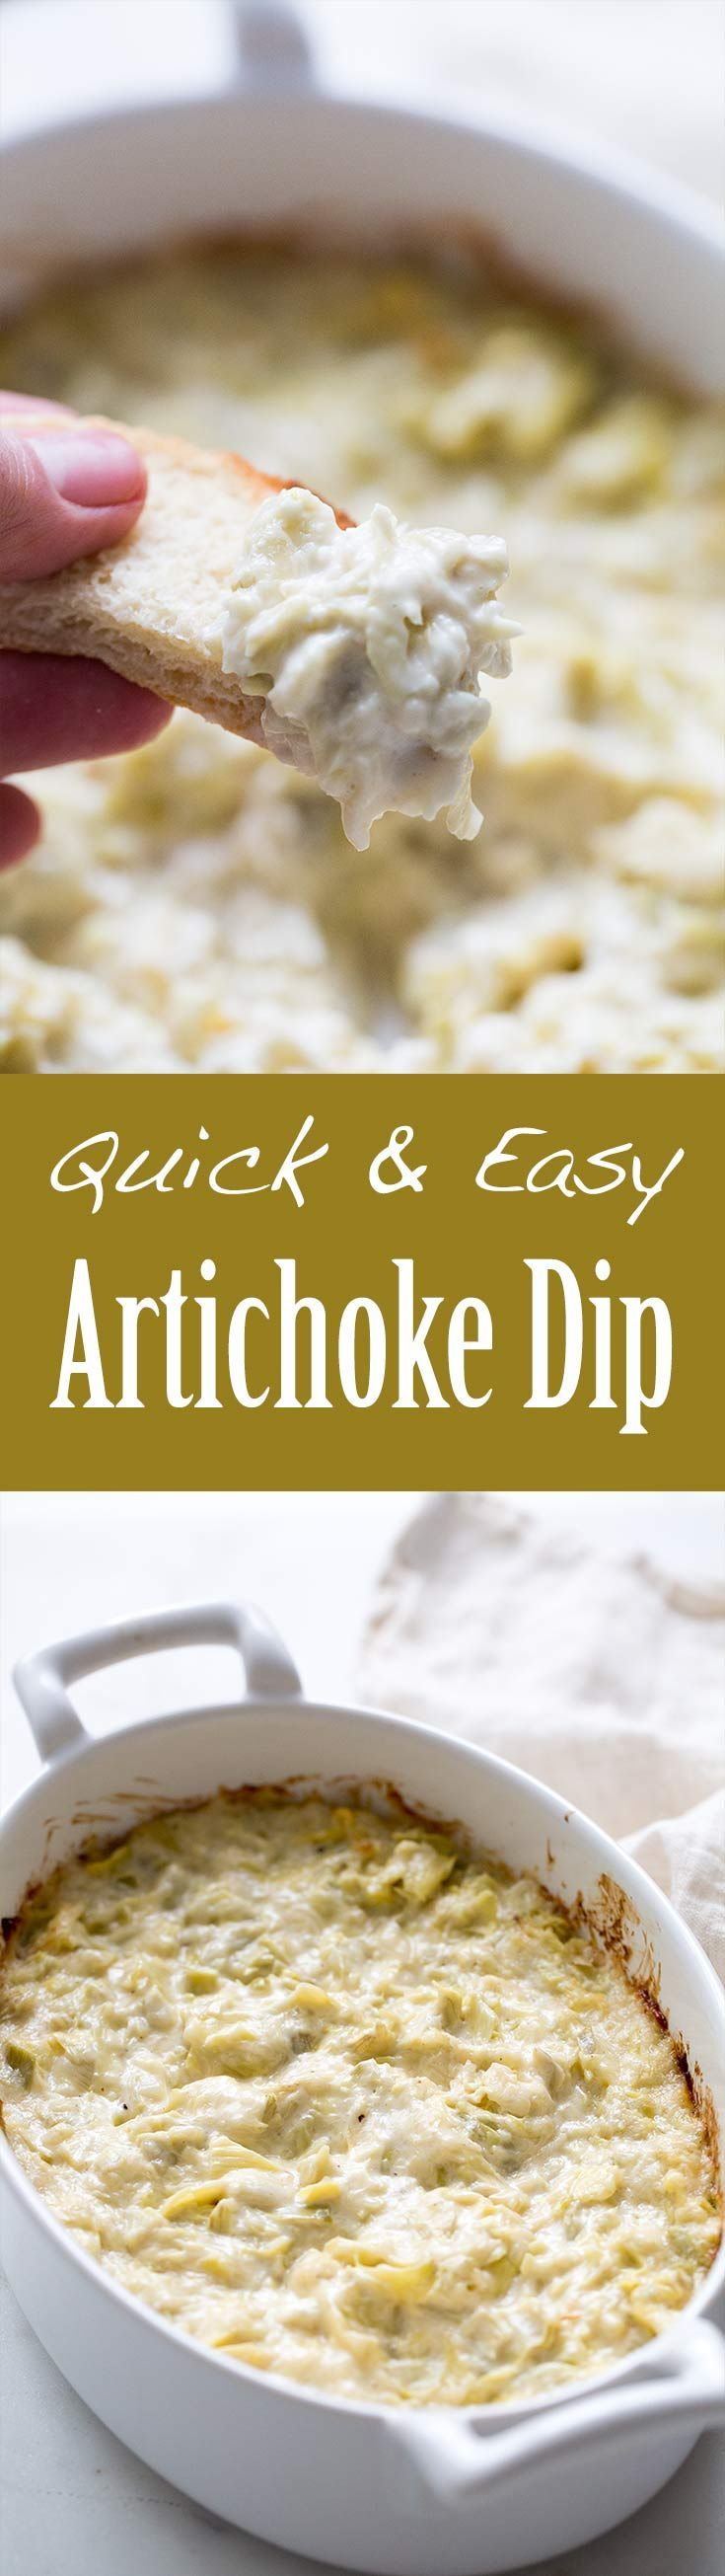 Quick and Easy Artichoke Dip ~ Quick easy hot artichoke dip with artichoke hearts, Parmesan, mayo, salt, pepper ~ SimplyRecipes.com